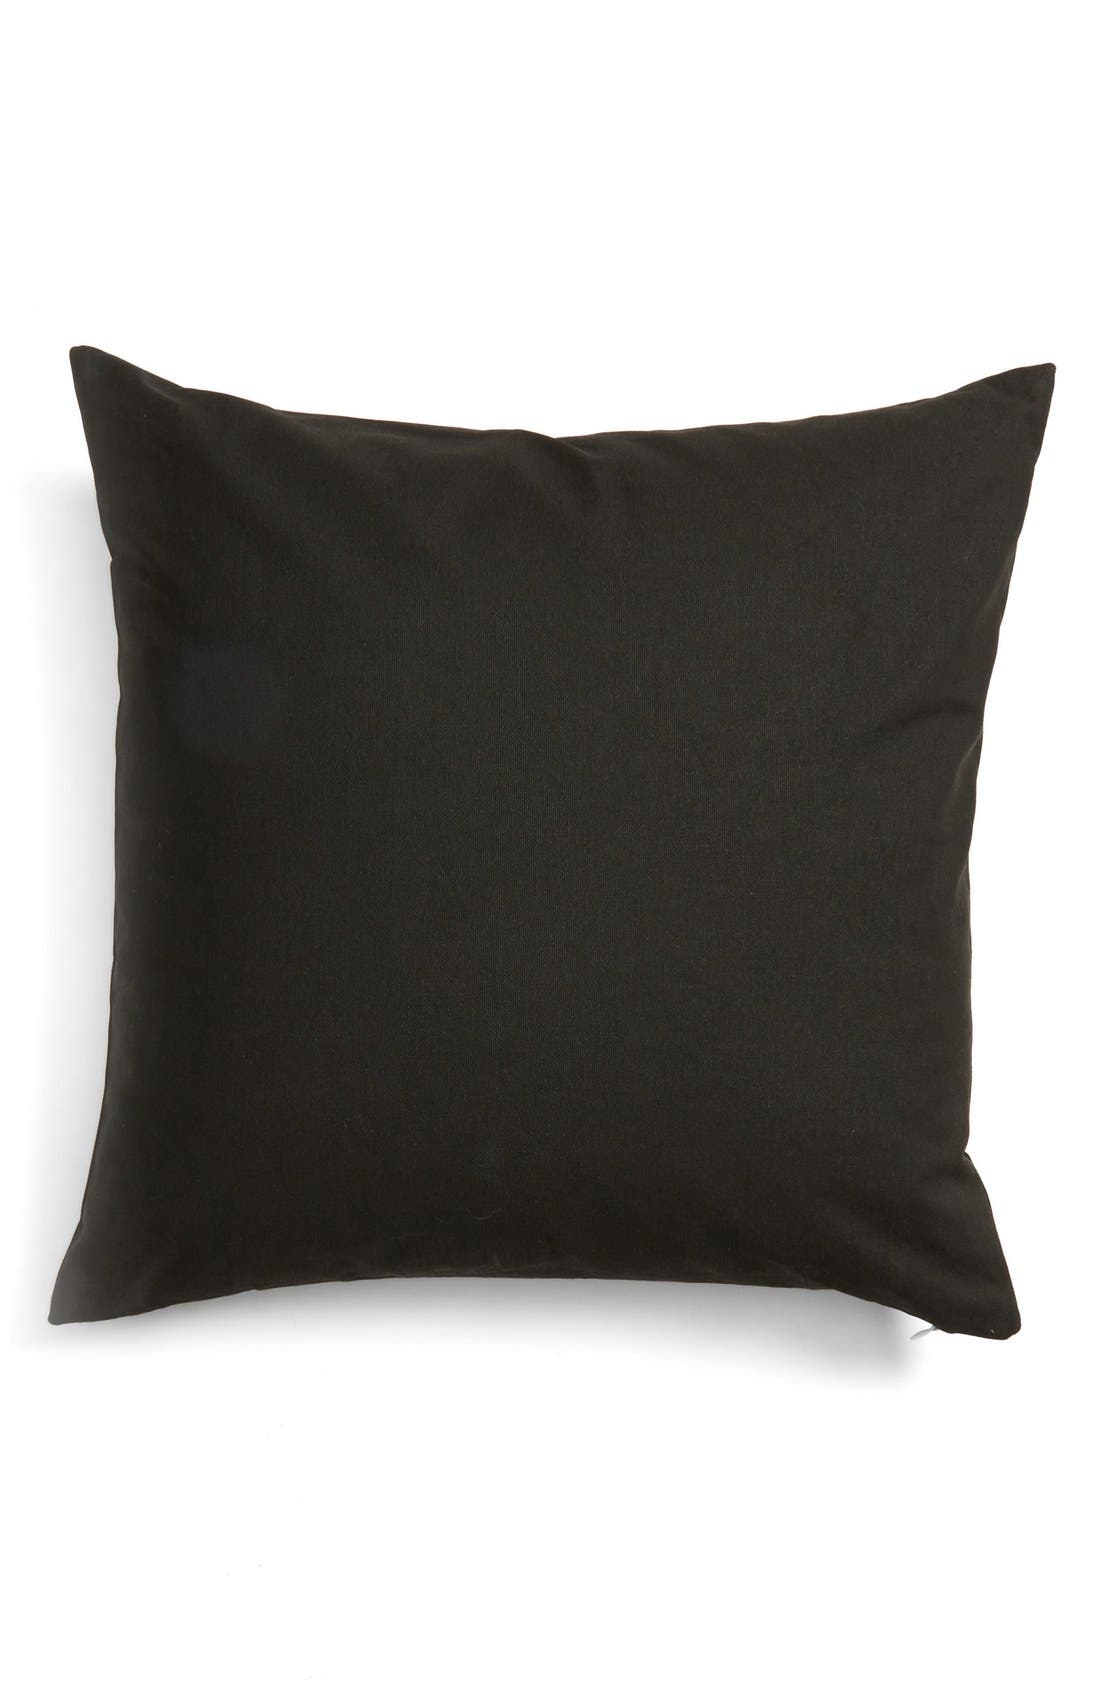 'ampersand' pillow,                             Alternate thumbnail 2, color,                             001